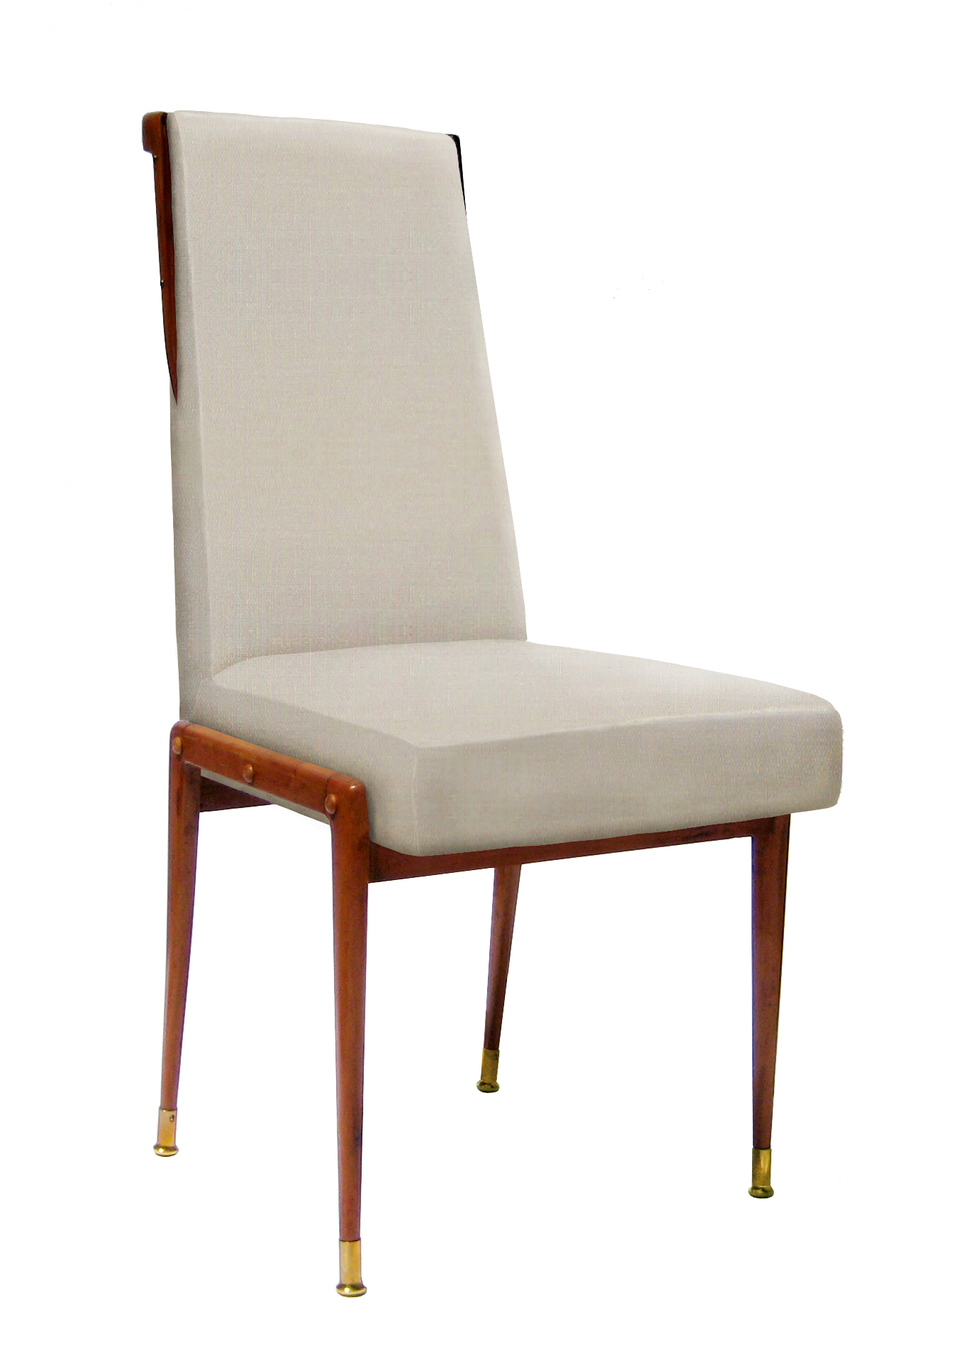 dana-john-chair-three-furniture-dining-room-brass-upholstery.jpg